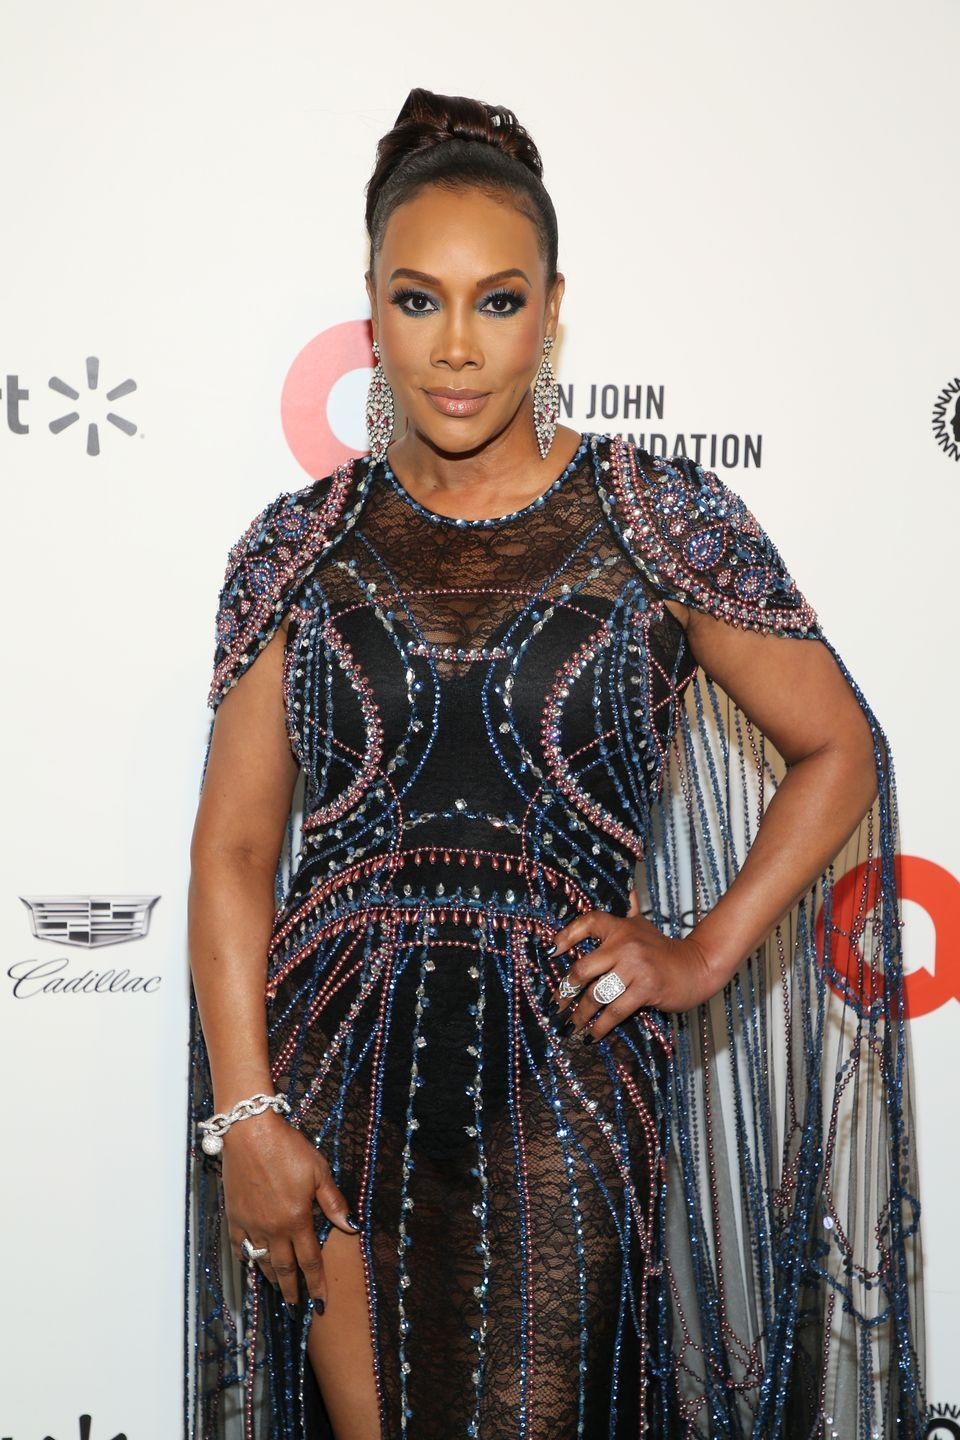 "<p><strong>Birthday: </strong>July 30</p><p><strong>Age Turning: </strong>56</p><p>With <a href=""https://www.oprahmag.com/entertainment/a33427140/vivica-a-fox-the-wrong-lifetime-movies-interview/"" rel=""nofollow noopener"" target=""_blank"" data-ylk=""slk:two new films premiering"" class=""link rapid-noclick-resp"">two new films premiering</a> in July for her Lifetime <em>Wrong</em> movie franchise, Fox is sure to enjoy her special day this year.<br></p>"